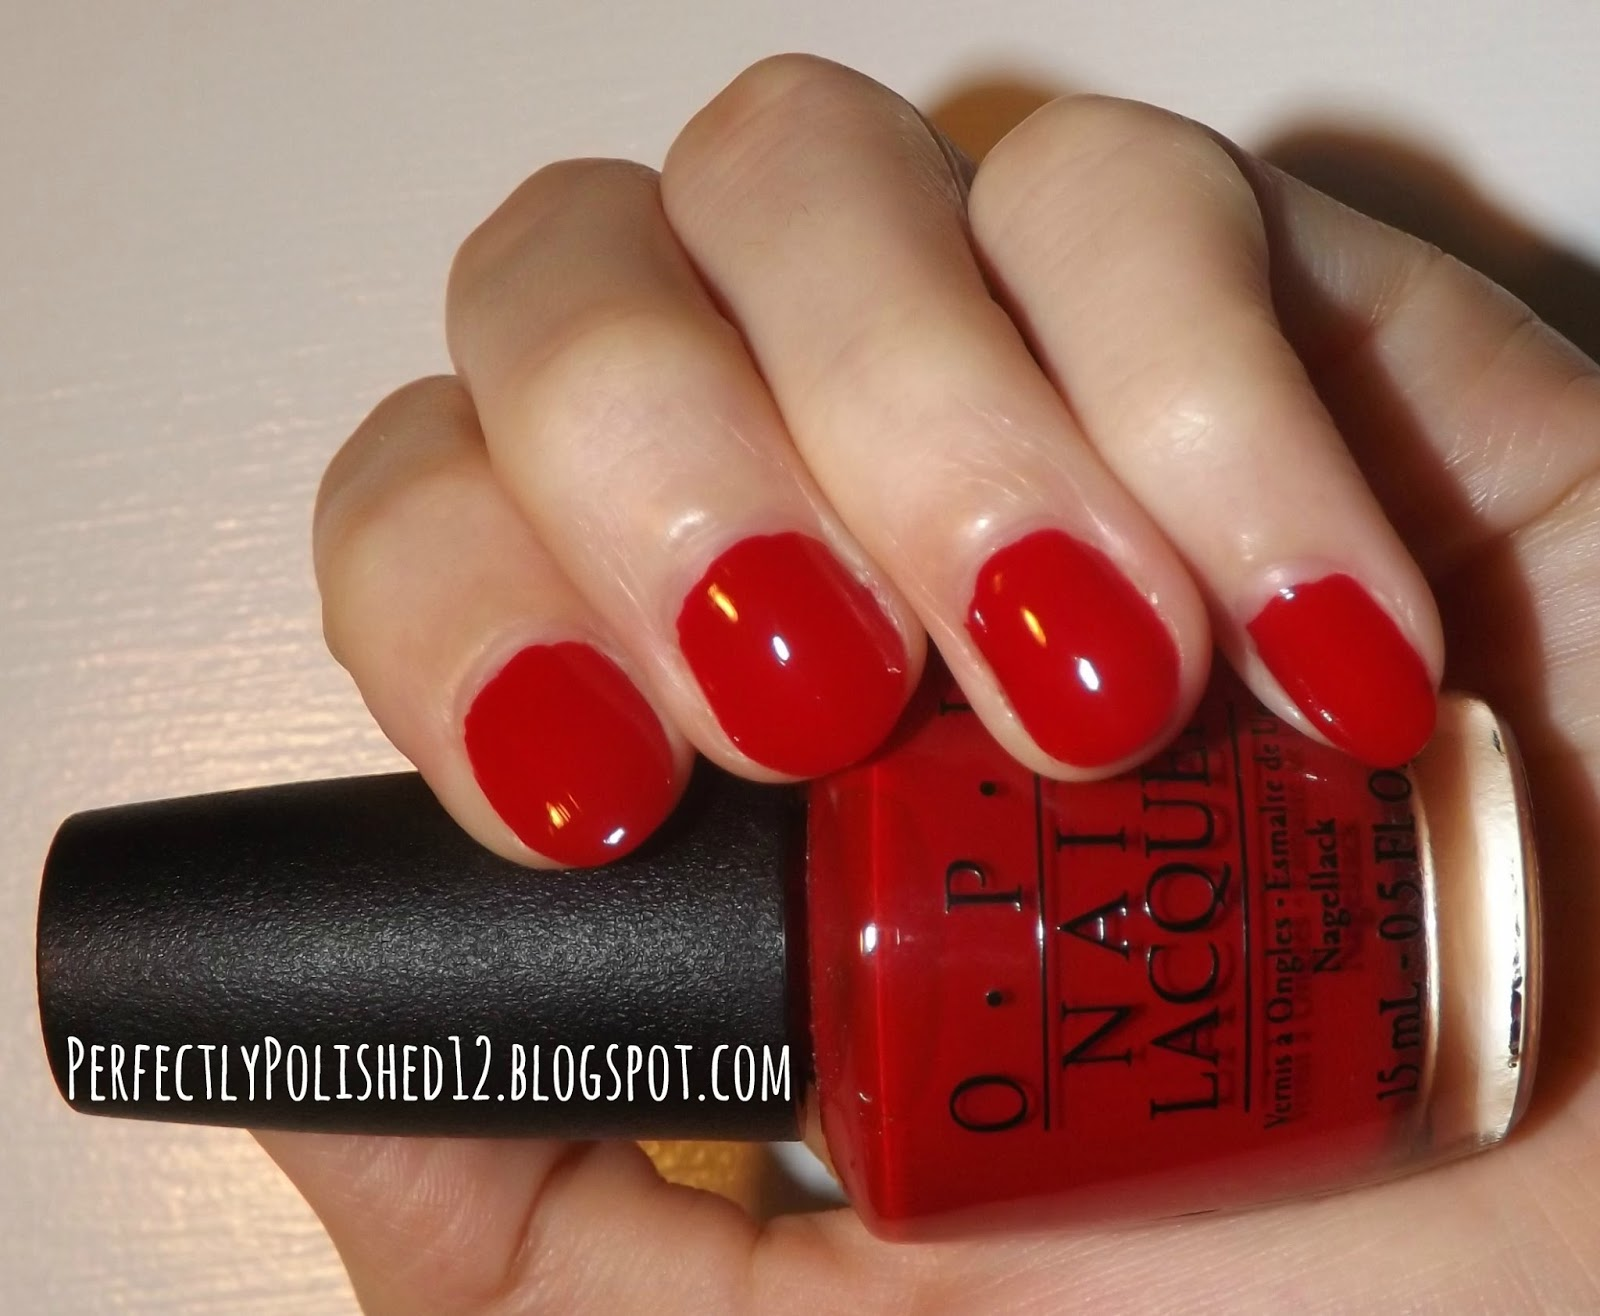 Best Red Nail Polish For My Skin Tone – Papillon Day Spa